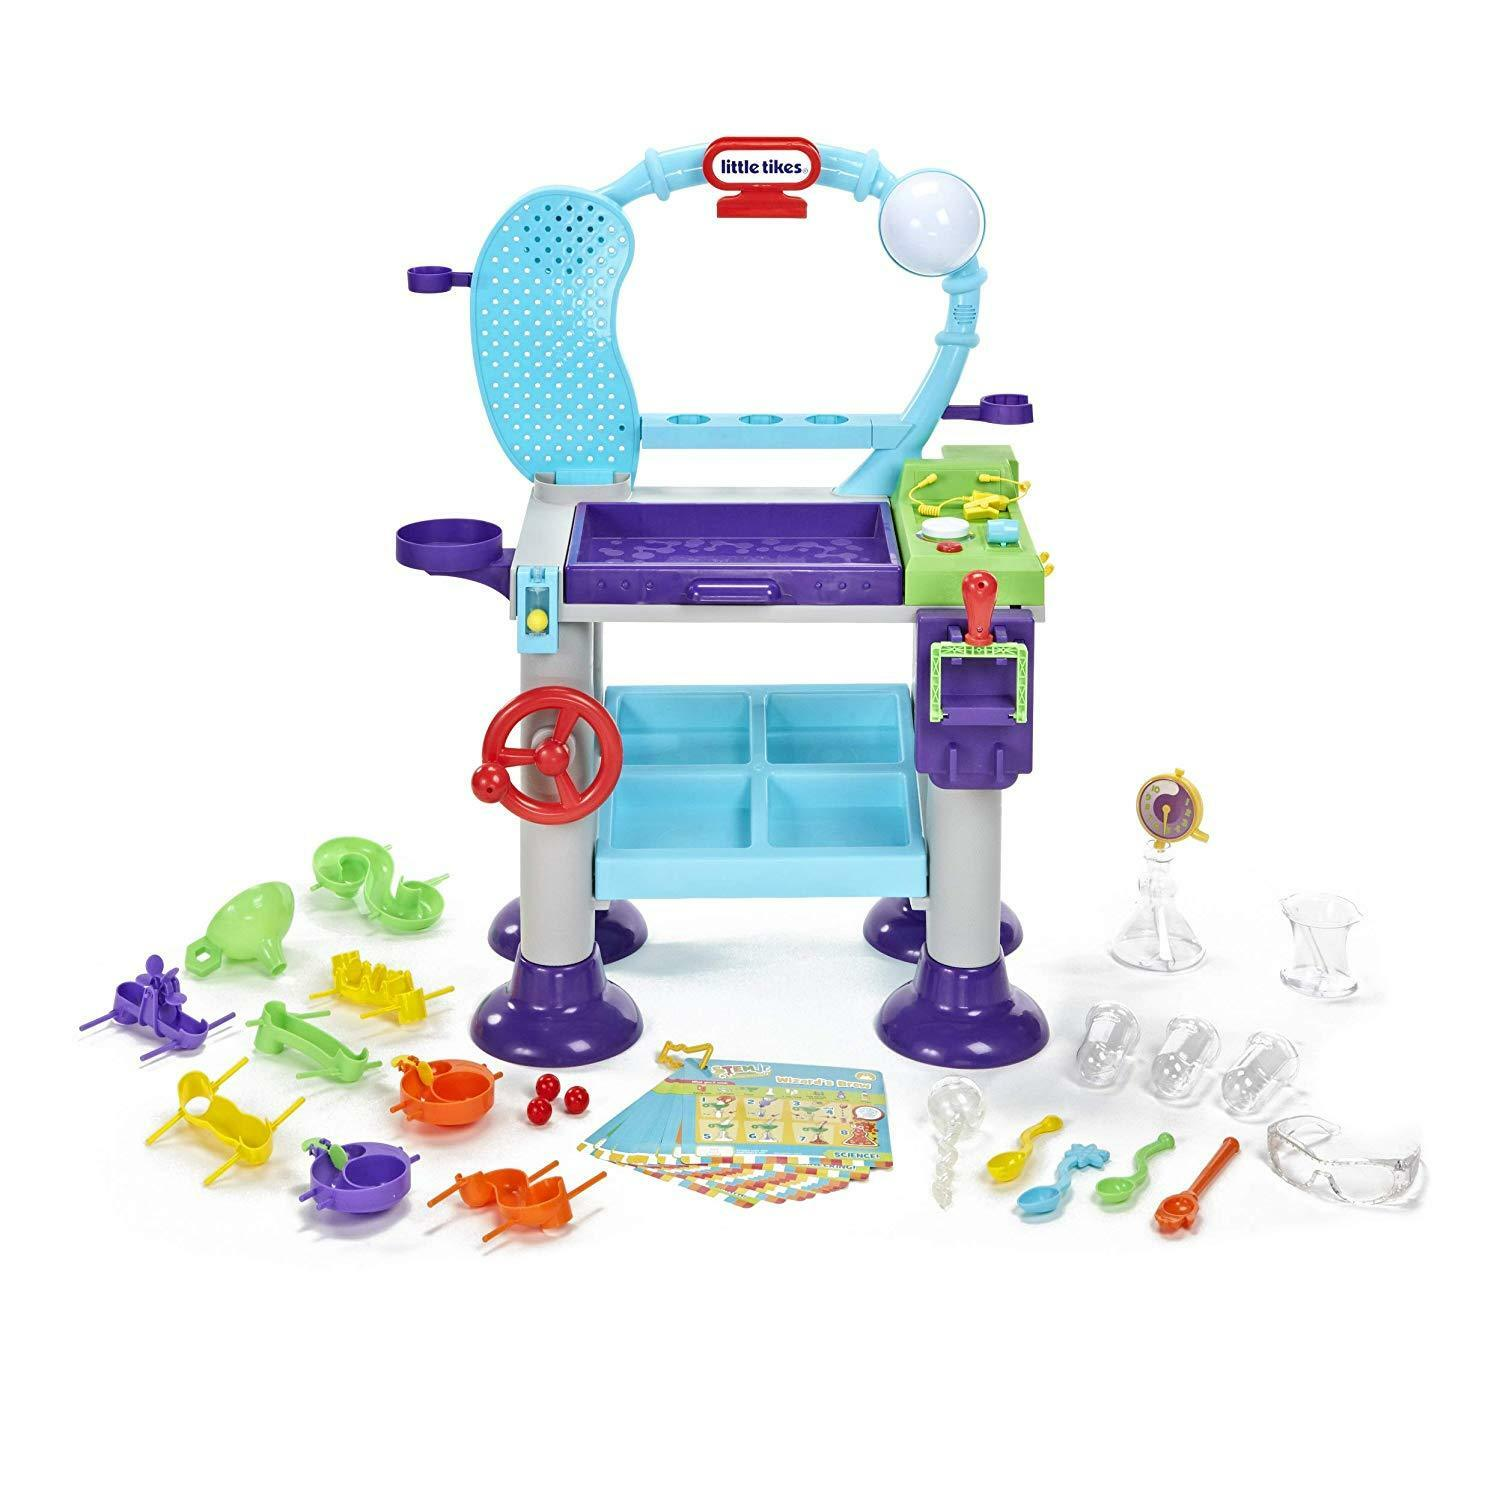 Kids Learning Toy Science Lab Creative Learning Toddler Toddler Toddler Preschooler Kids Gym Set c24d6f